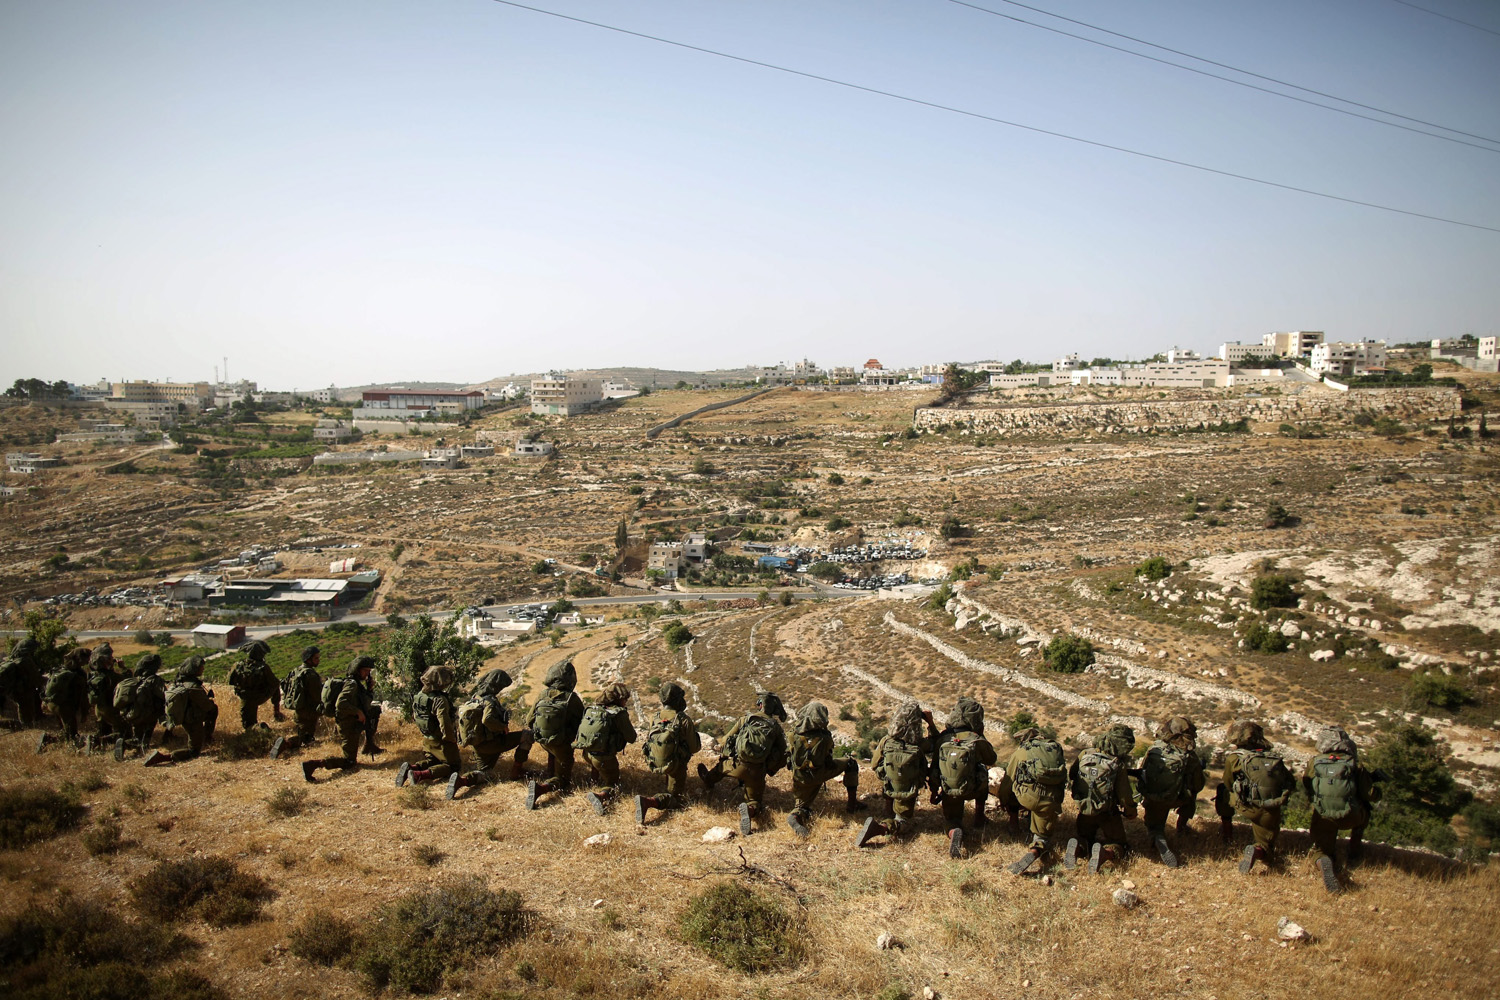 Jun. 20, 2014. Israeli soldiers search for clues in connection with the case of three missing Israeli teenagers on the outskirts of the West Bank city of Hebron.